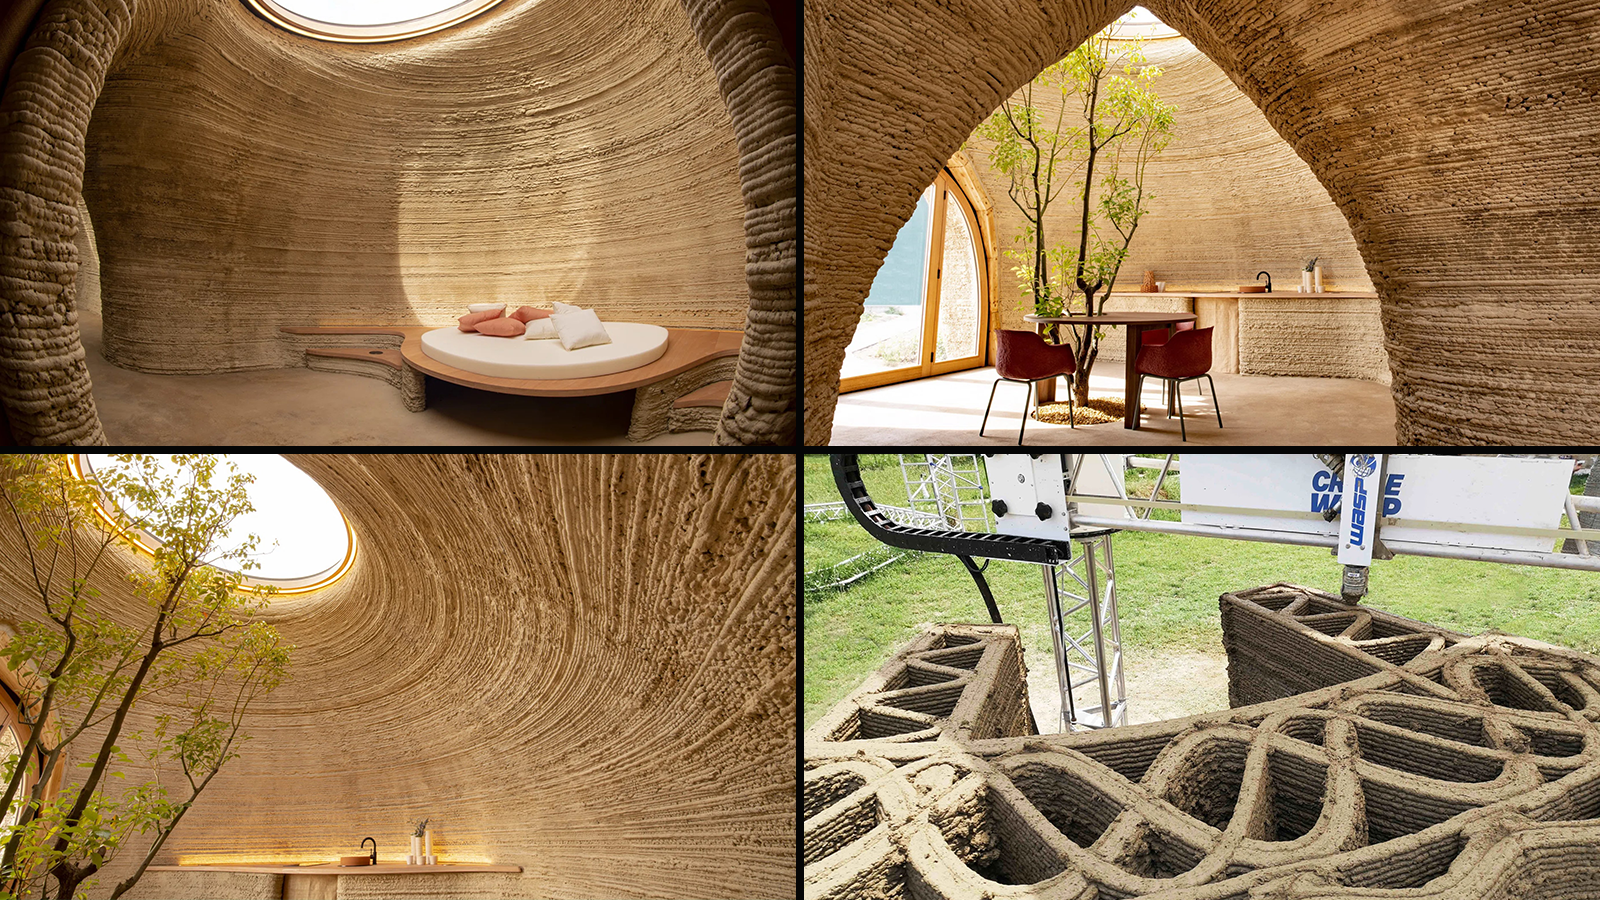 Four views of the 3D-printed home's interior